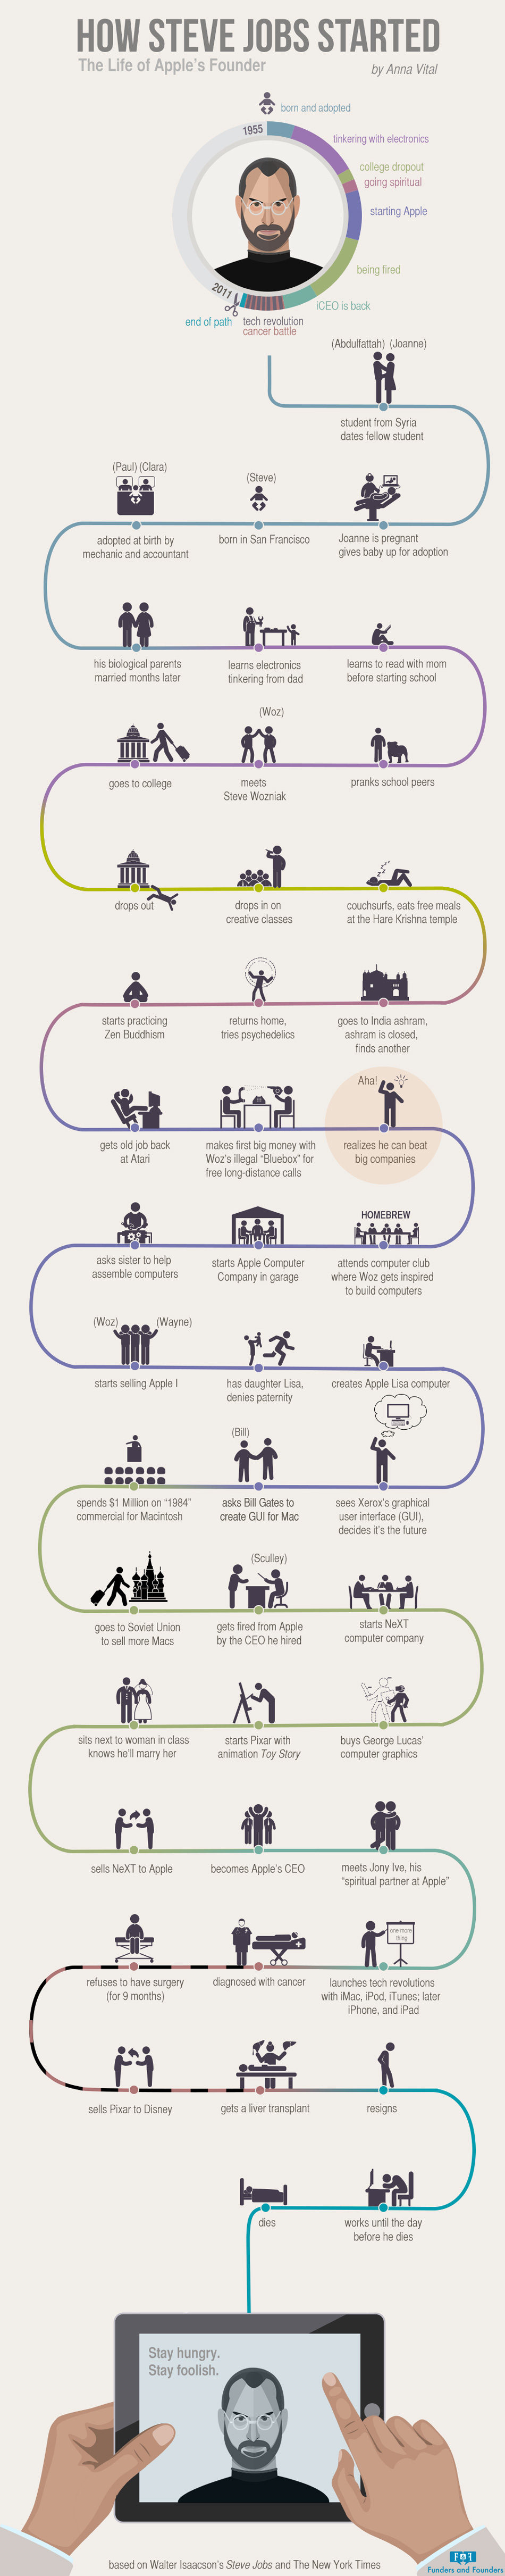 how-steve-jobs-started-apple-founder-infographic.jpg